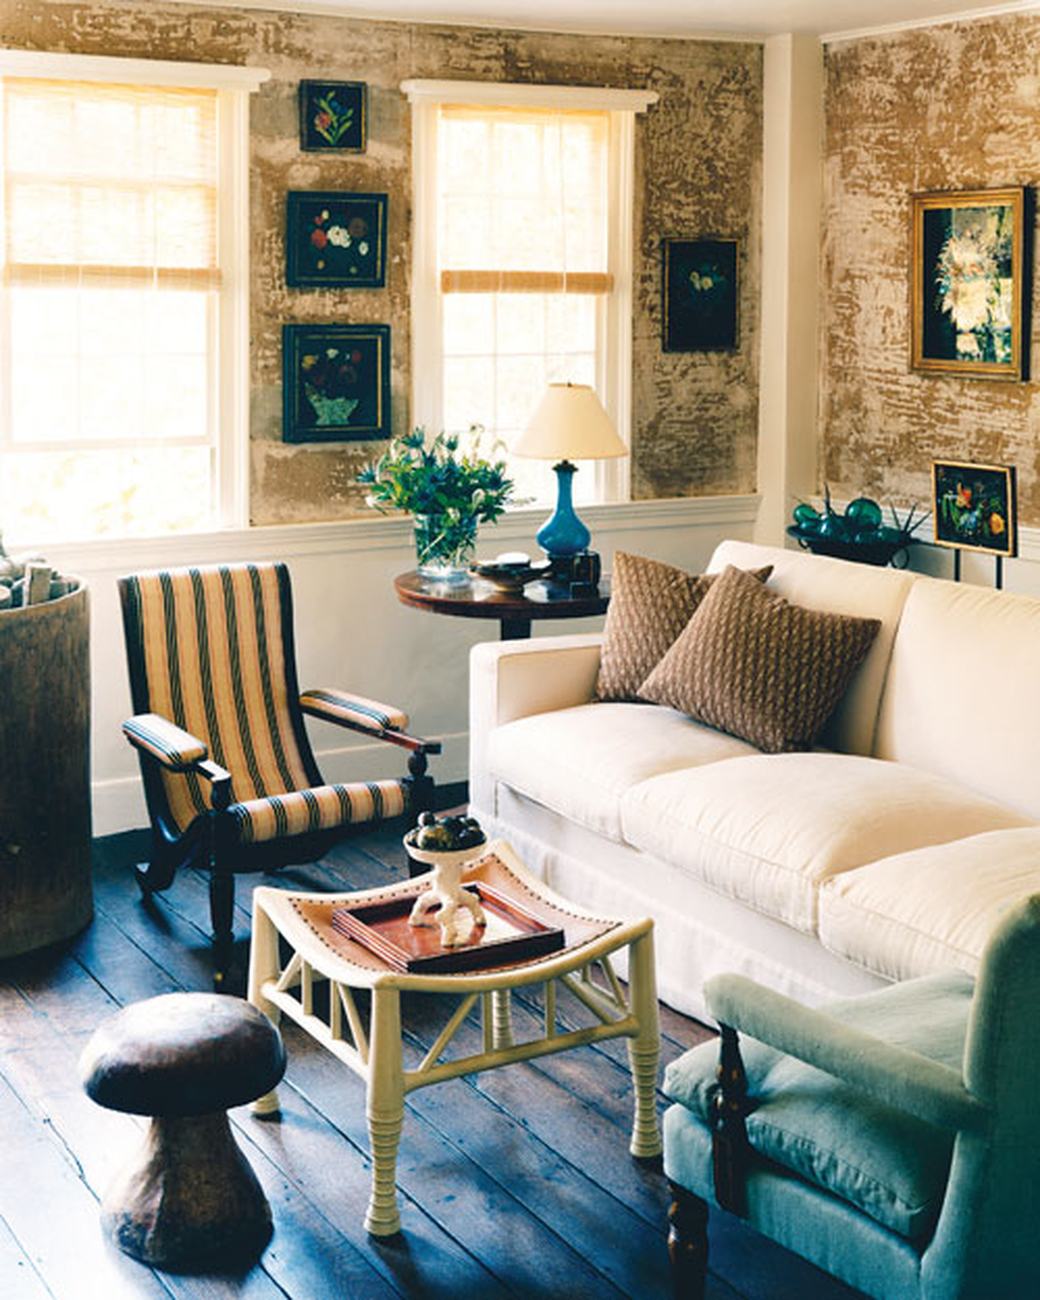 Decor Inspiration: Country Cottage Chic By Angus Wilkie